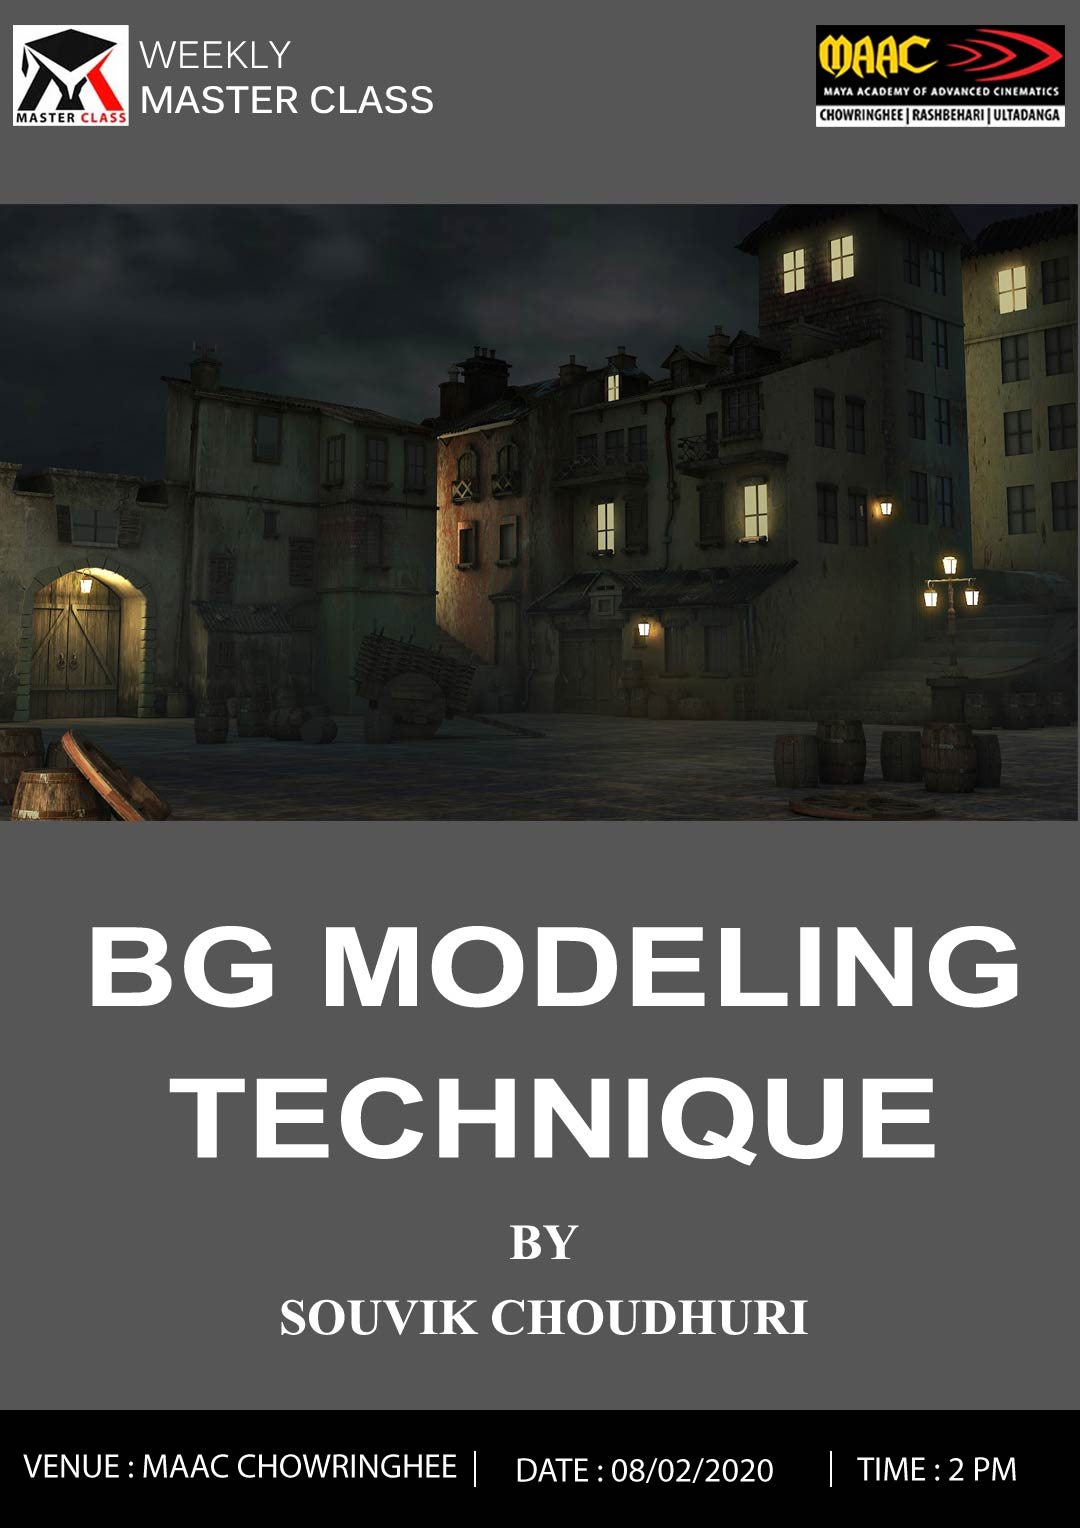 Weekly Master Class on BG Modeling Technique